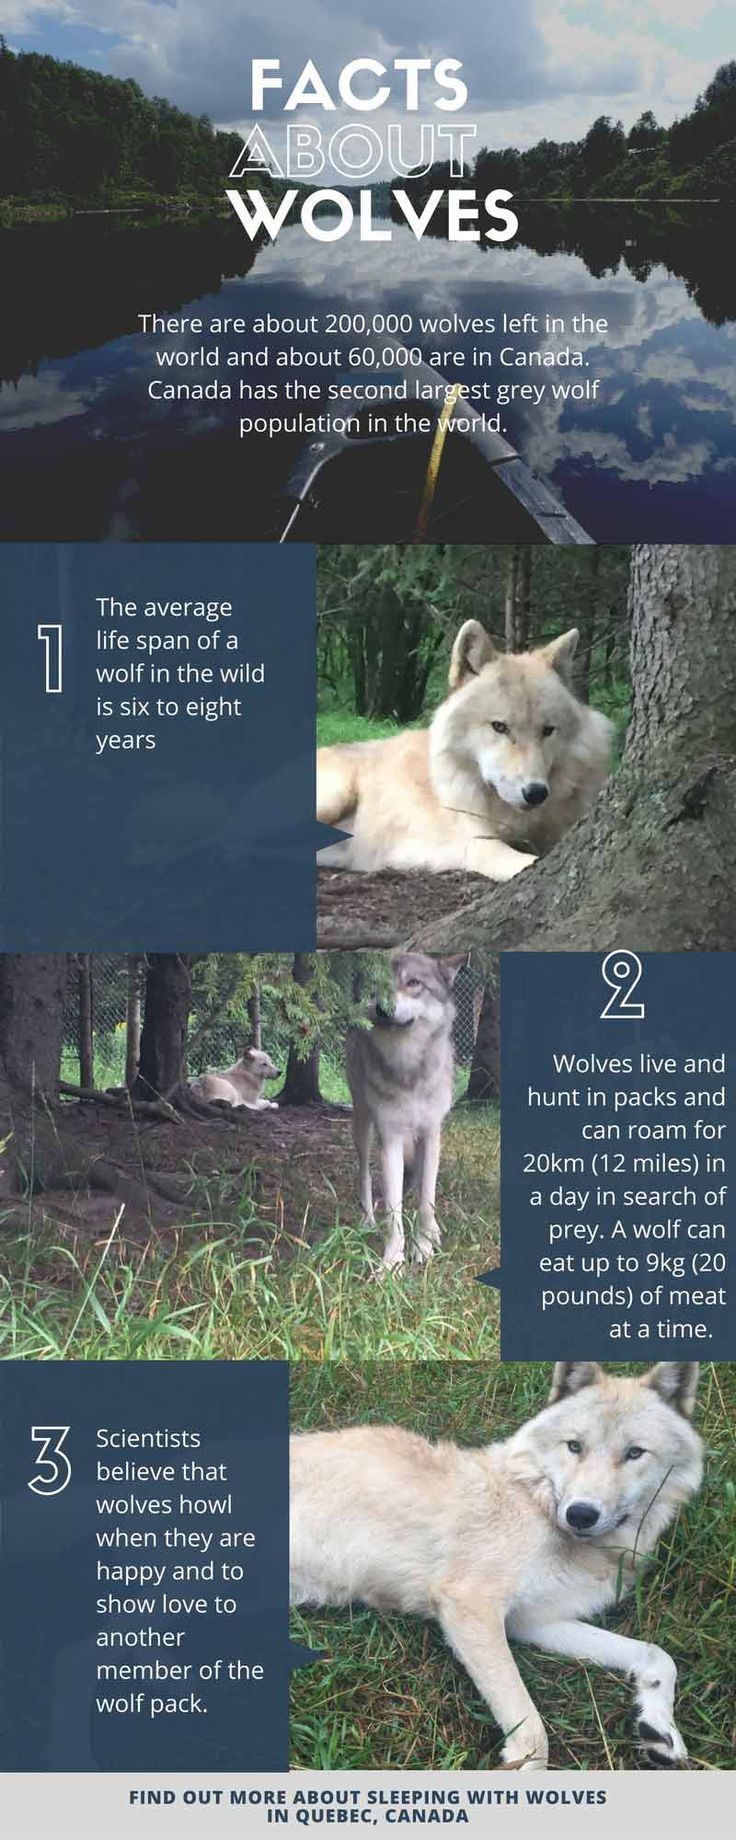 Sleeping With Wolves in Quebec Canada http://travel2next.com/sleeping-in-a-wolf-park-in-quebec-canada/?utm_campaign=coschedule&utm_source=pinterest&utm_medium=Travel%202%20Next&utm_content=Sleeping%20With%20Wolves%20in%20Quebec%20Canada